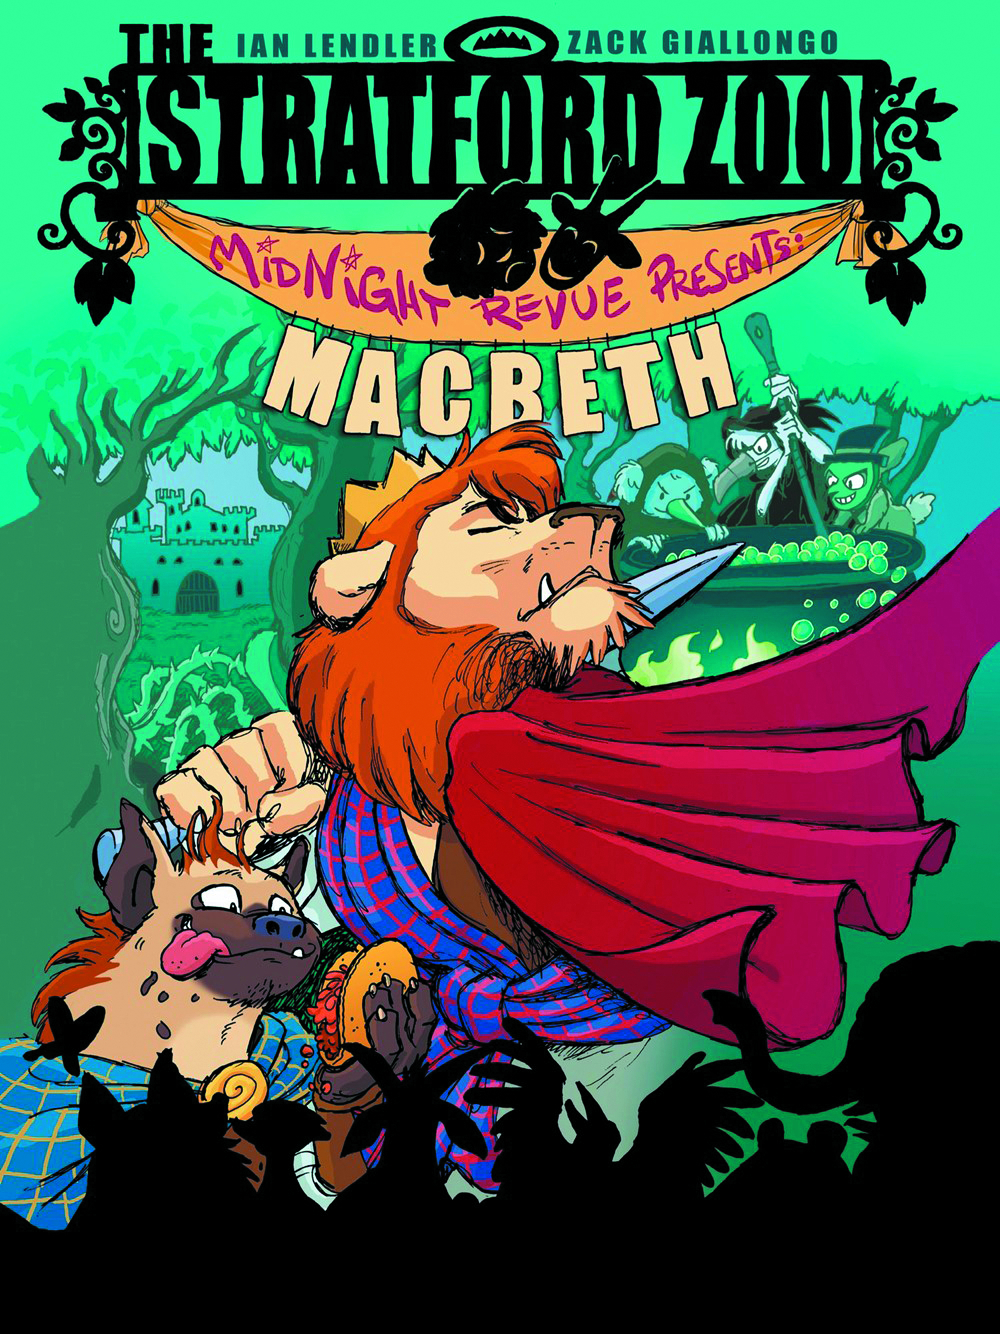 STRATFORD ZOO MIDNIGHT REVUE PRESENTS MACBETH HC GN